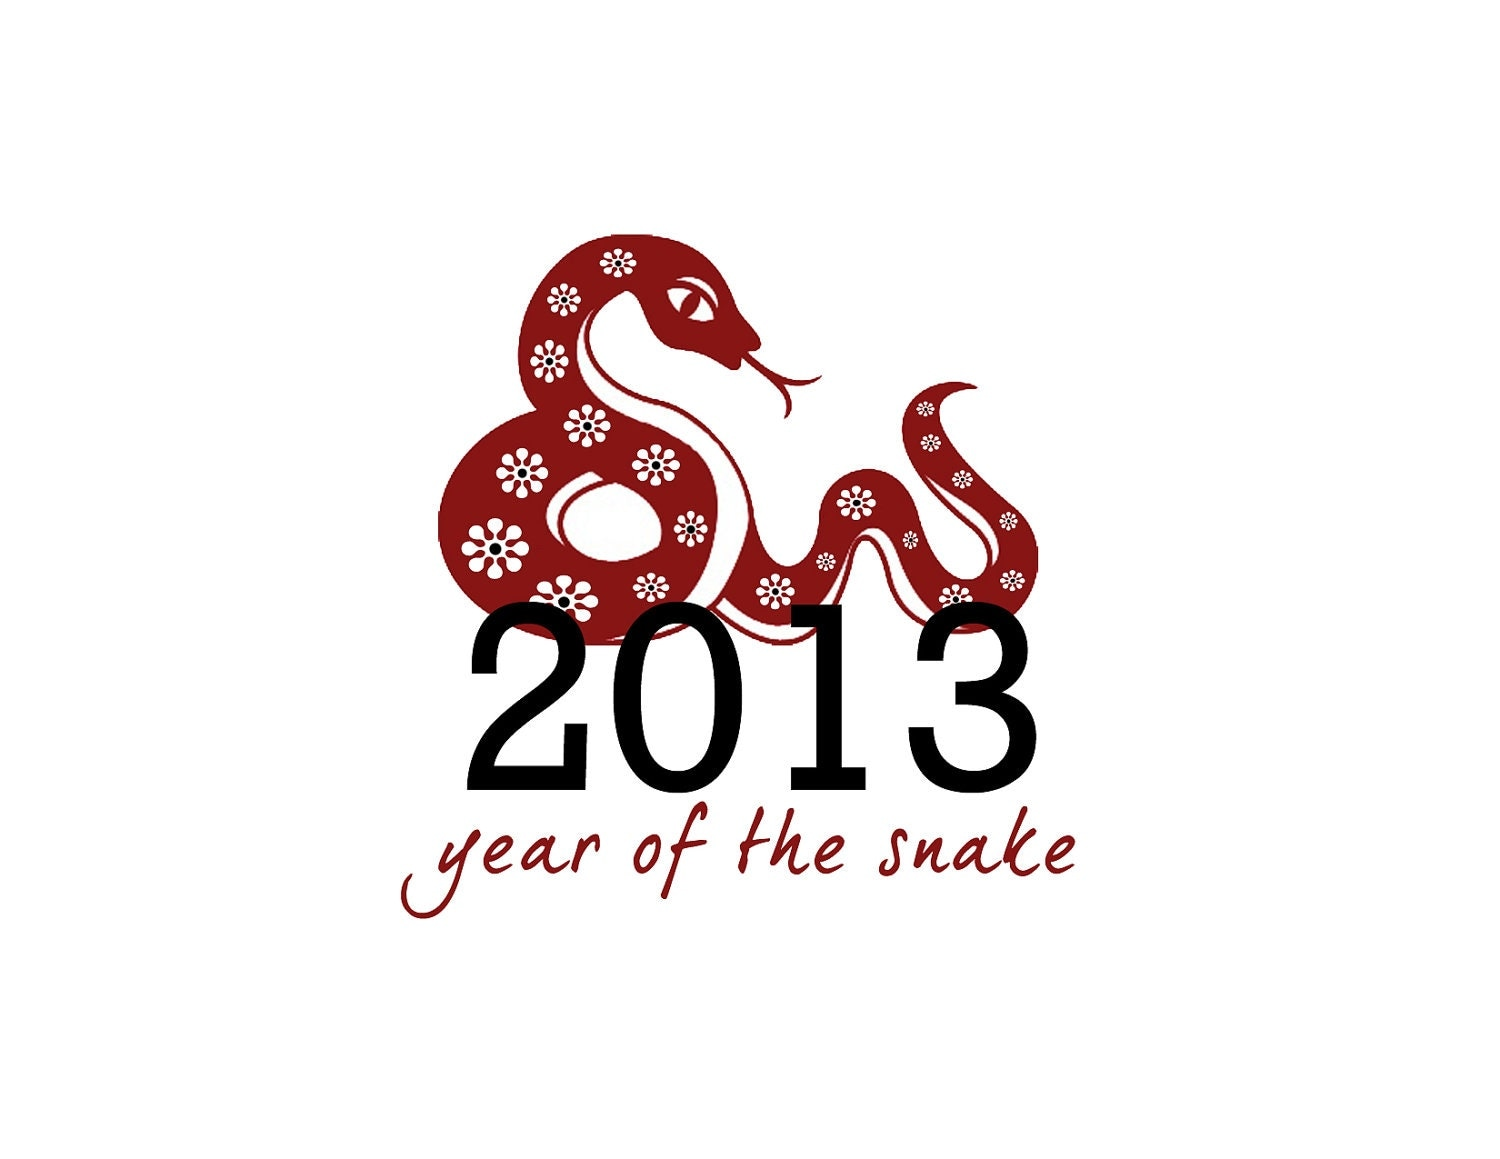 Opening 2013 Year Of The Snake Drawing Img3etsystatic 002 0 5158144 Il Fullxfull374948563 Awtq